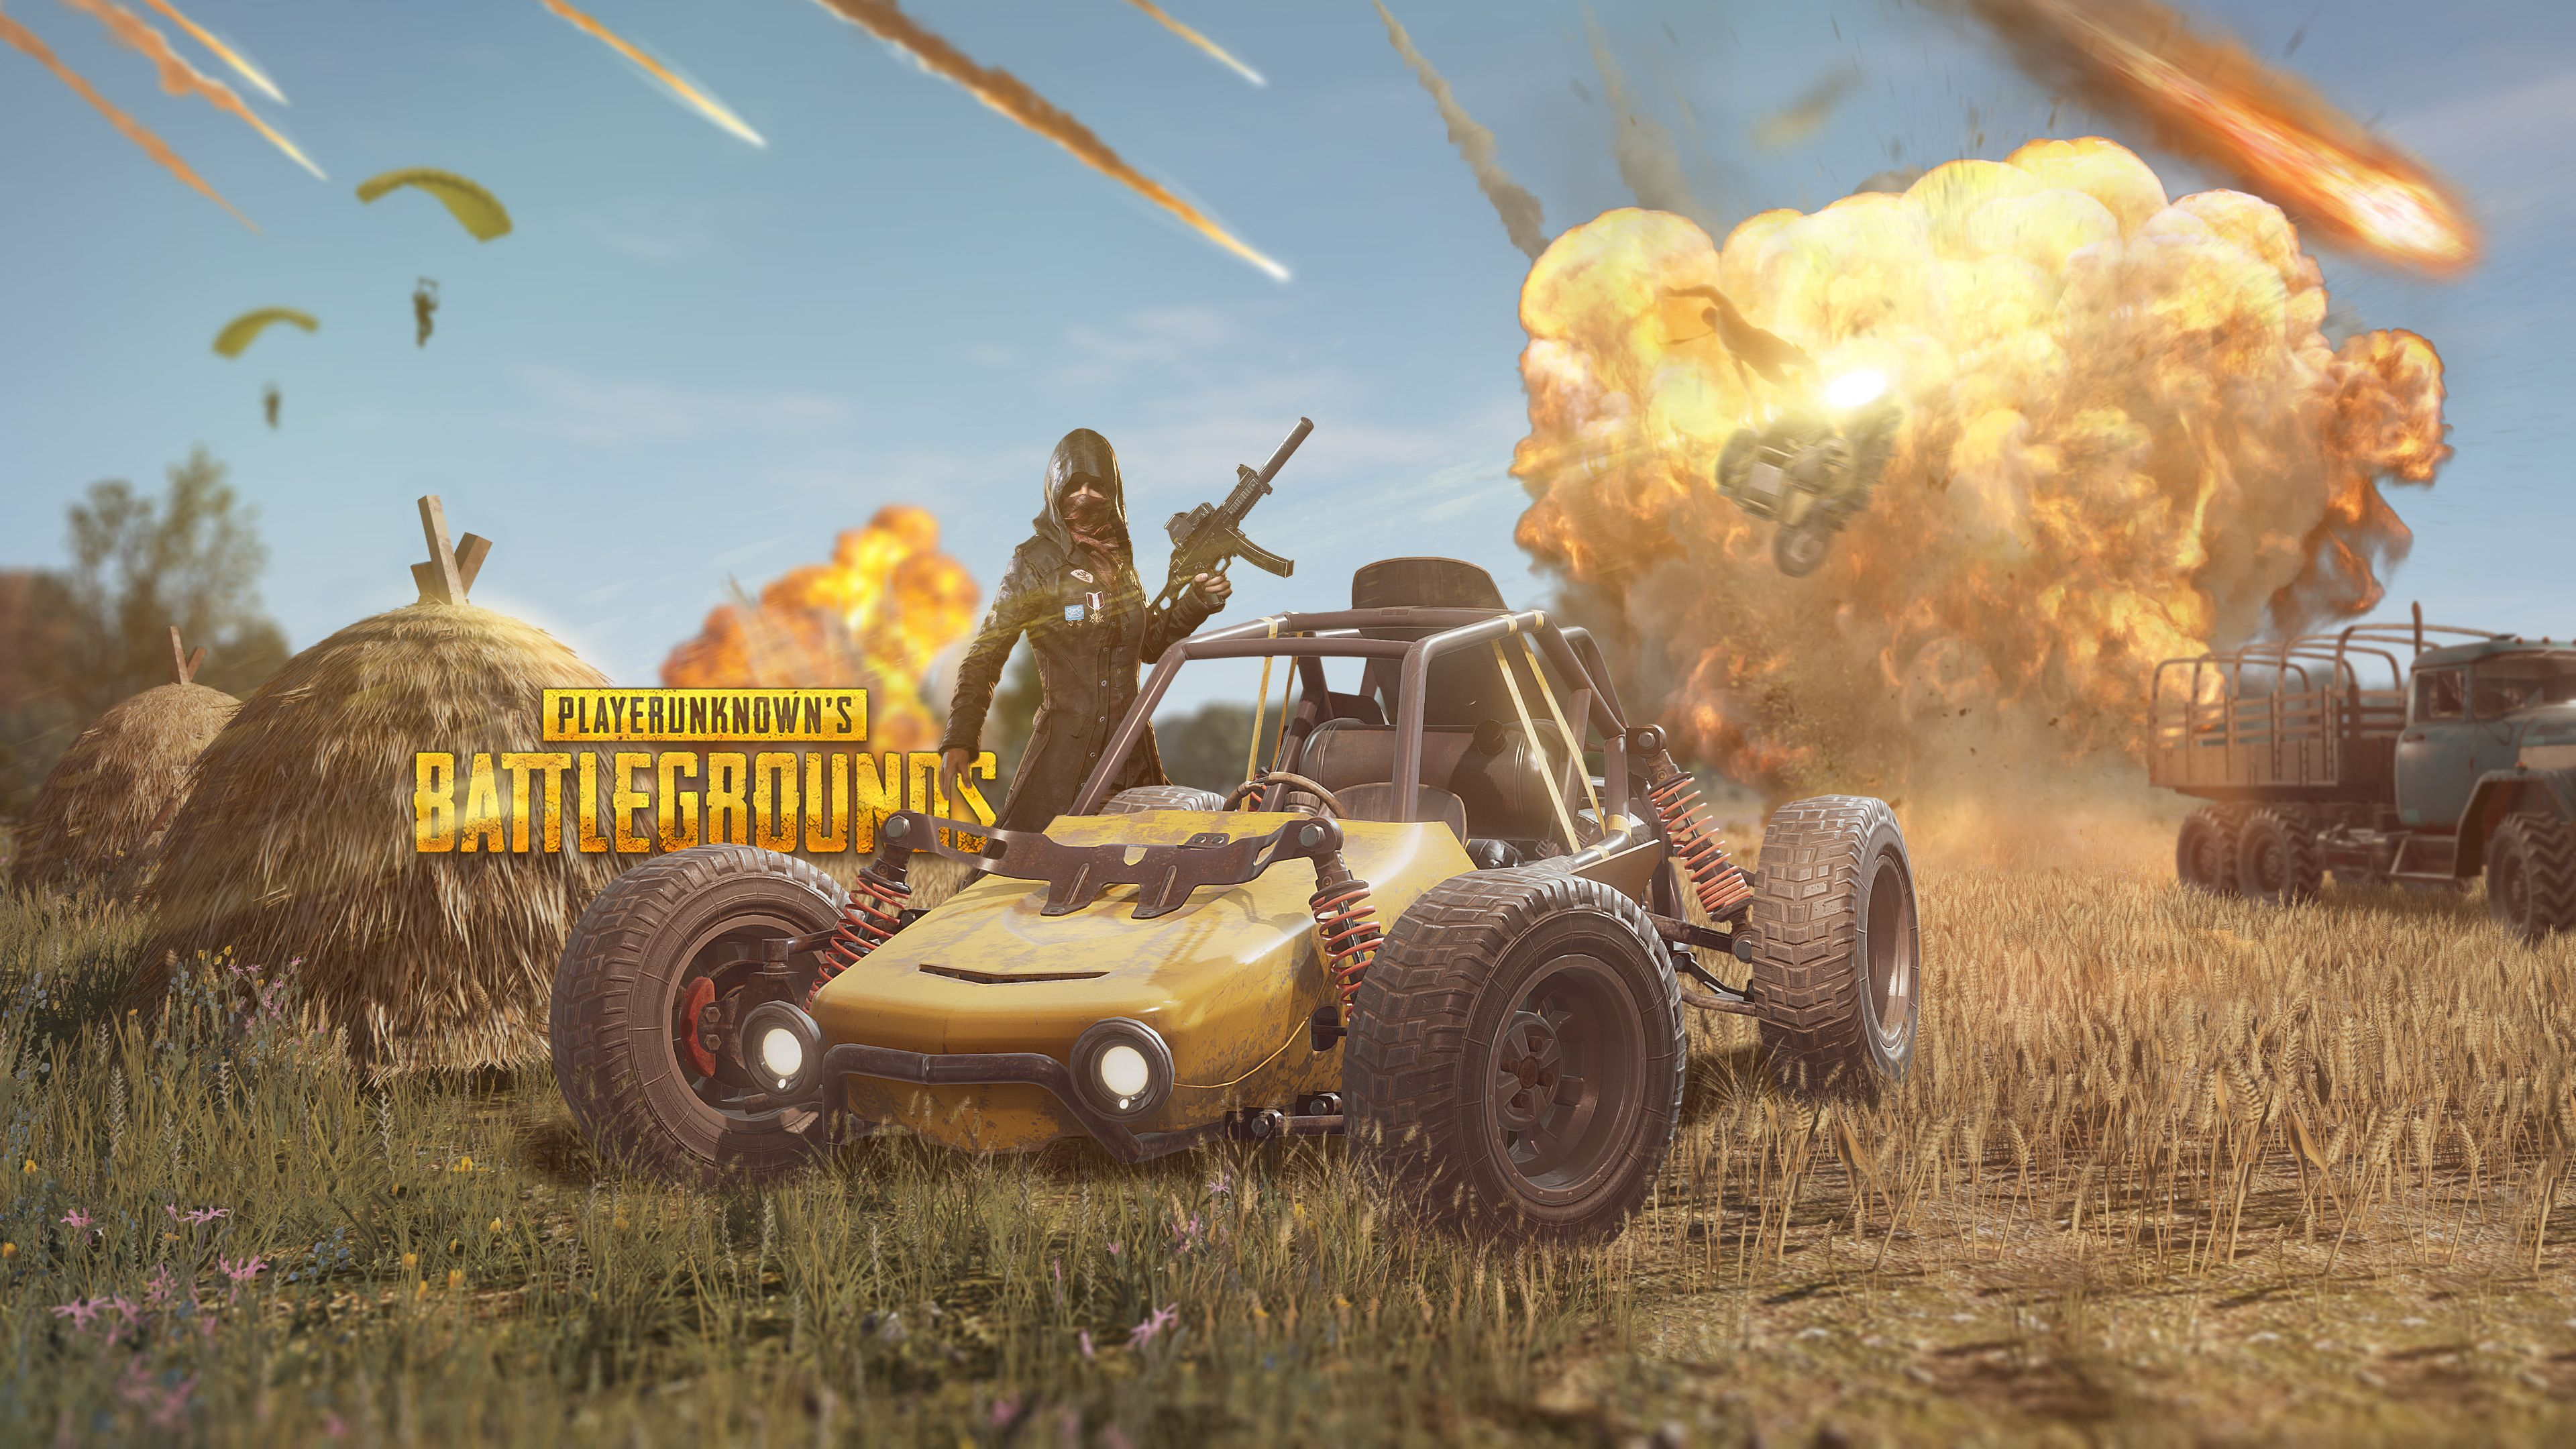 Pubg Wallpaper 4k Mobile: Pubg Wallpapers Widescreen On Wallpaper 1080p HD